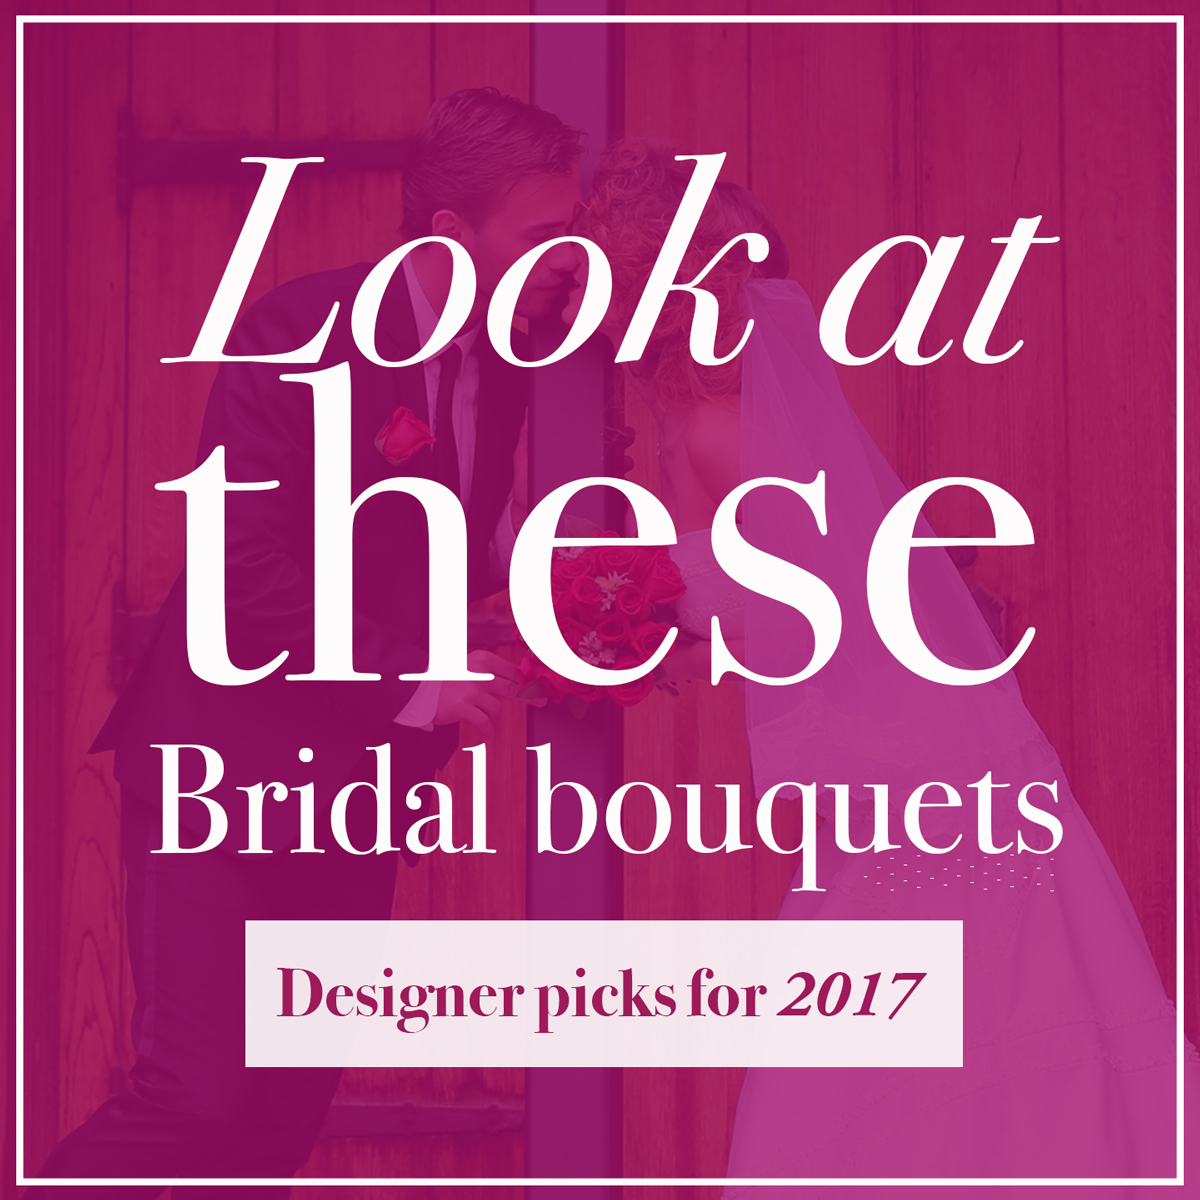 Le Bouquet designer's choice bridal bouquets for 2017